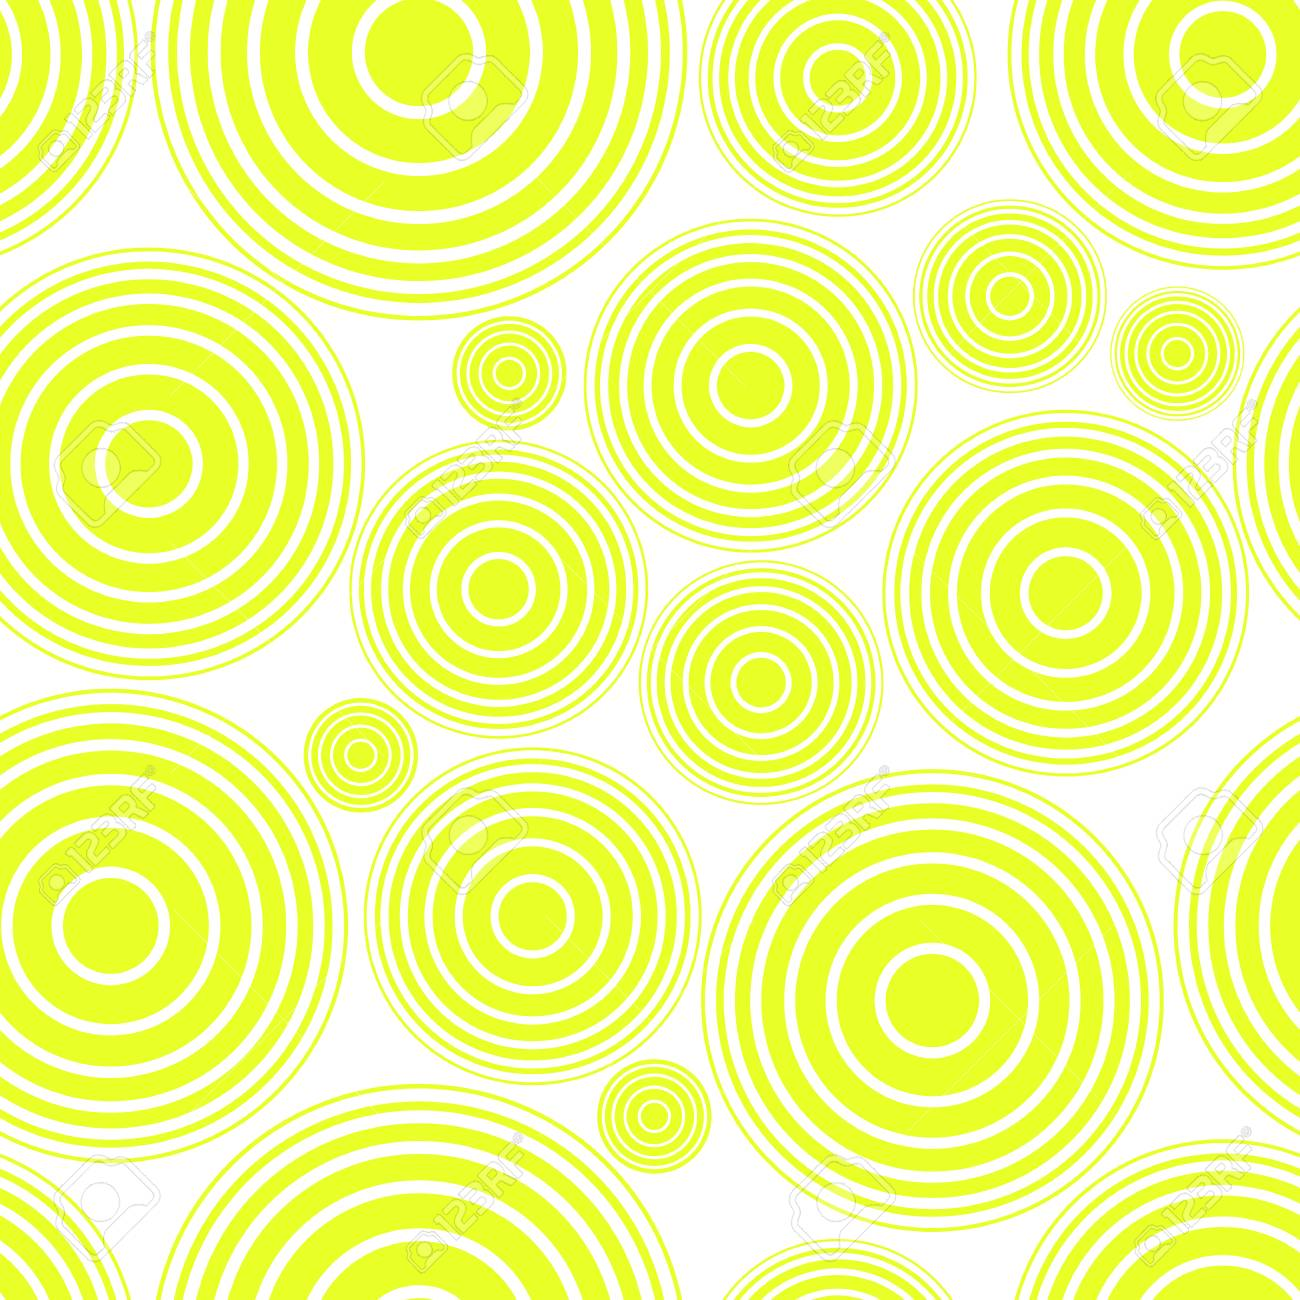 Seamless Pattern Of Lime Green Circles Design Elements For Printables Card Wallpaper